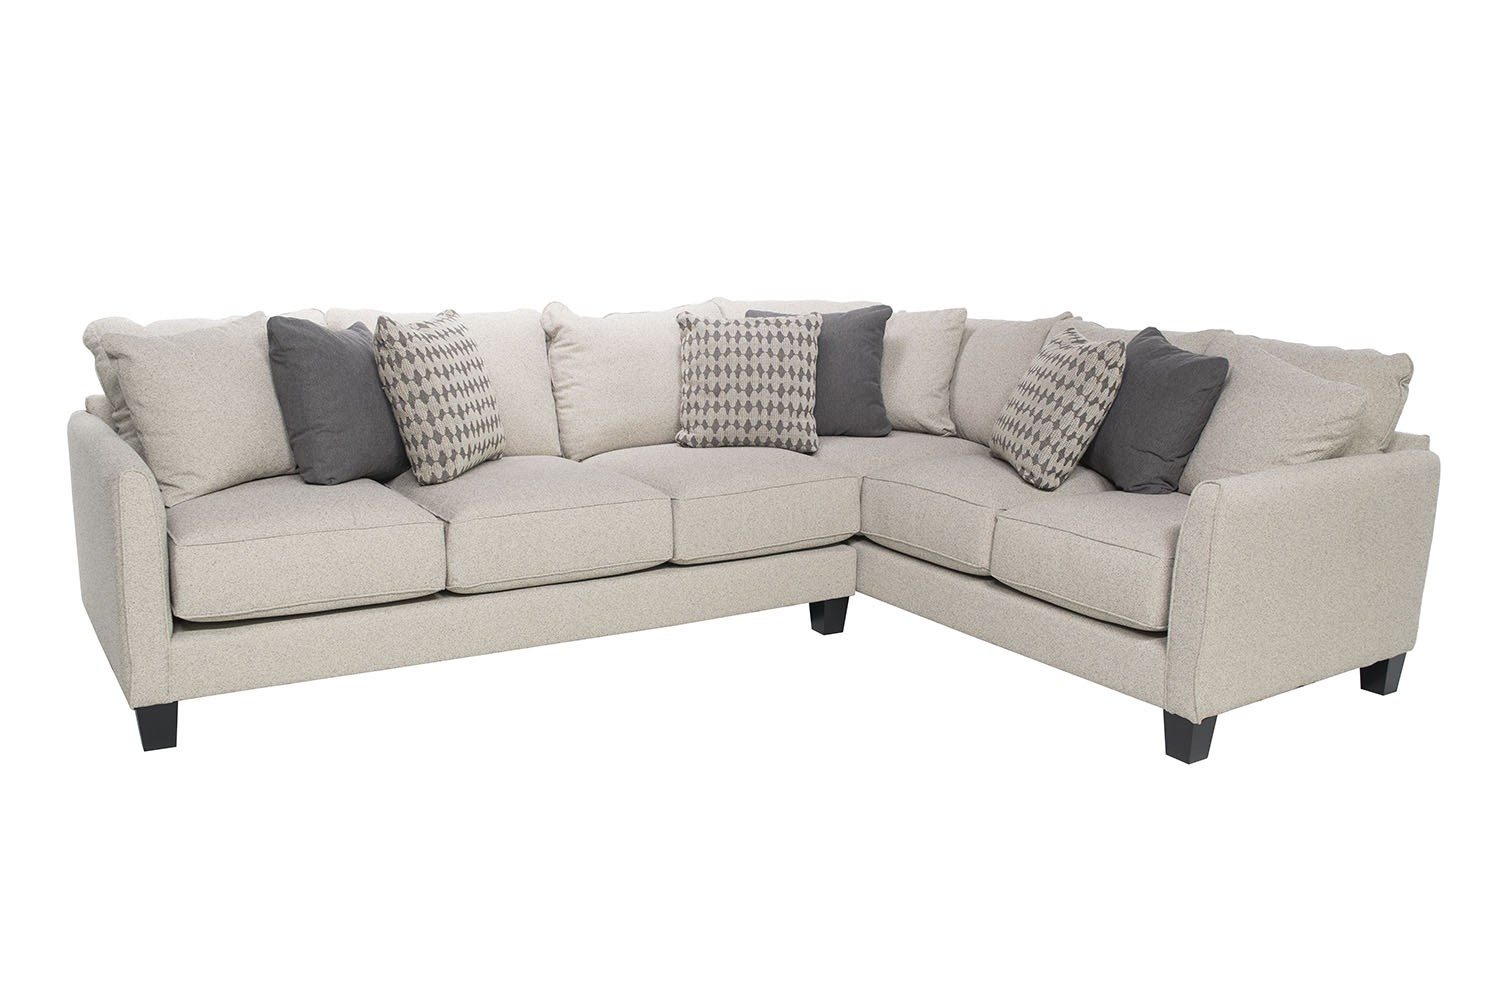 Stockholm Sofa Stockholm Right Facing Sectional Mor Furniture For Less